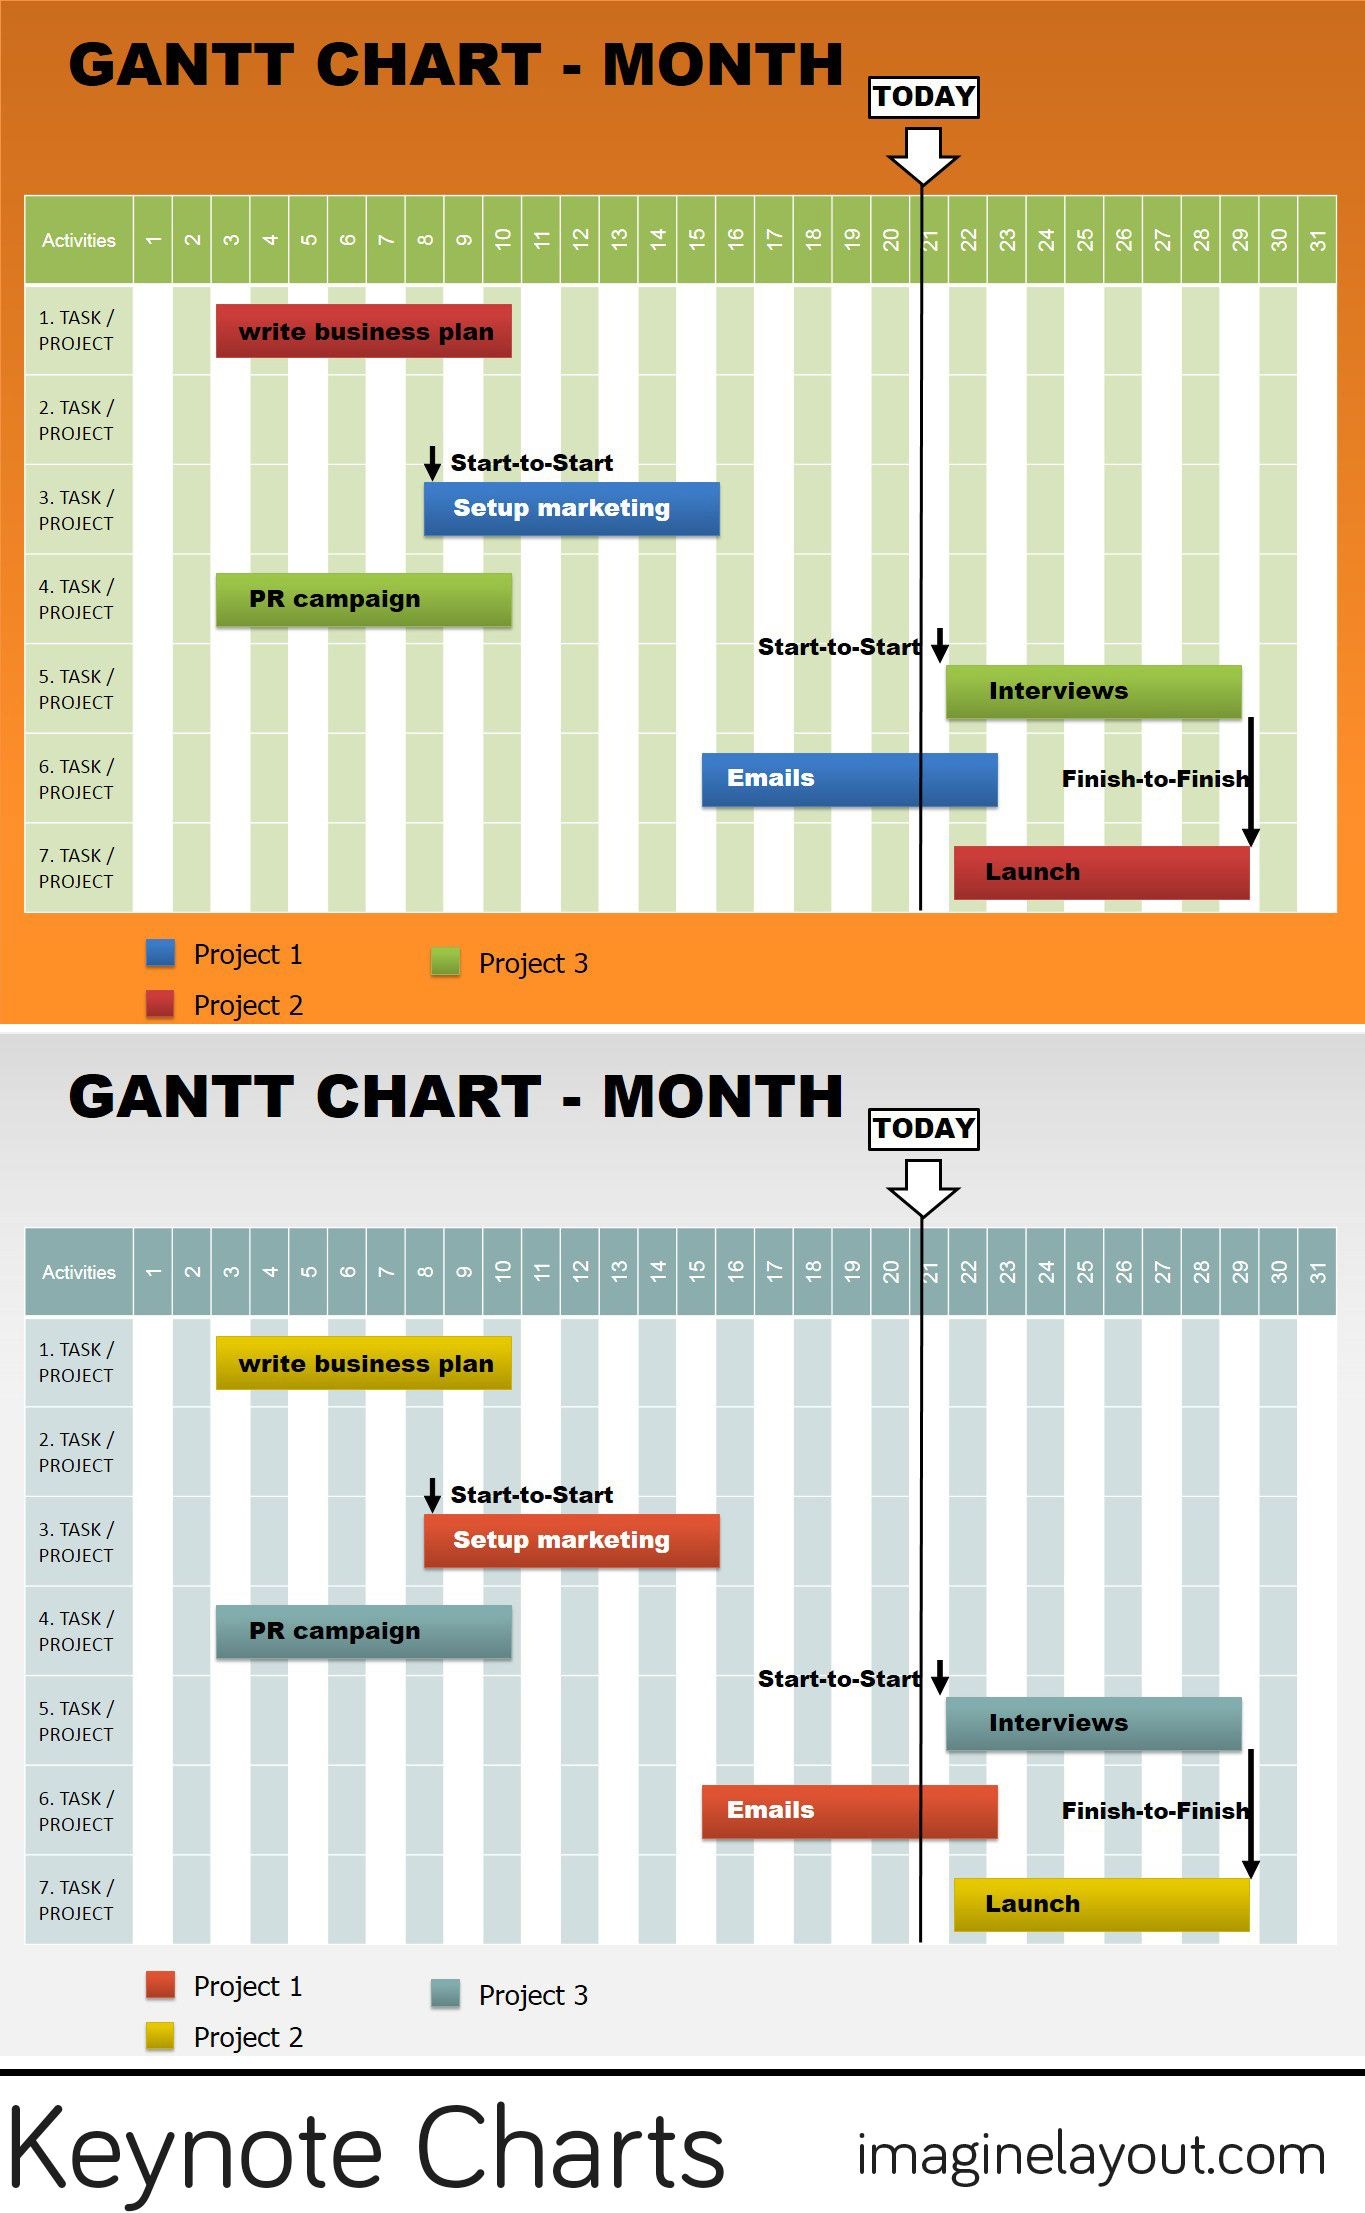 download free month gantt keynote charts for free presentation, Powerpoint templates